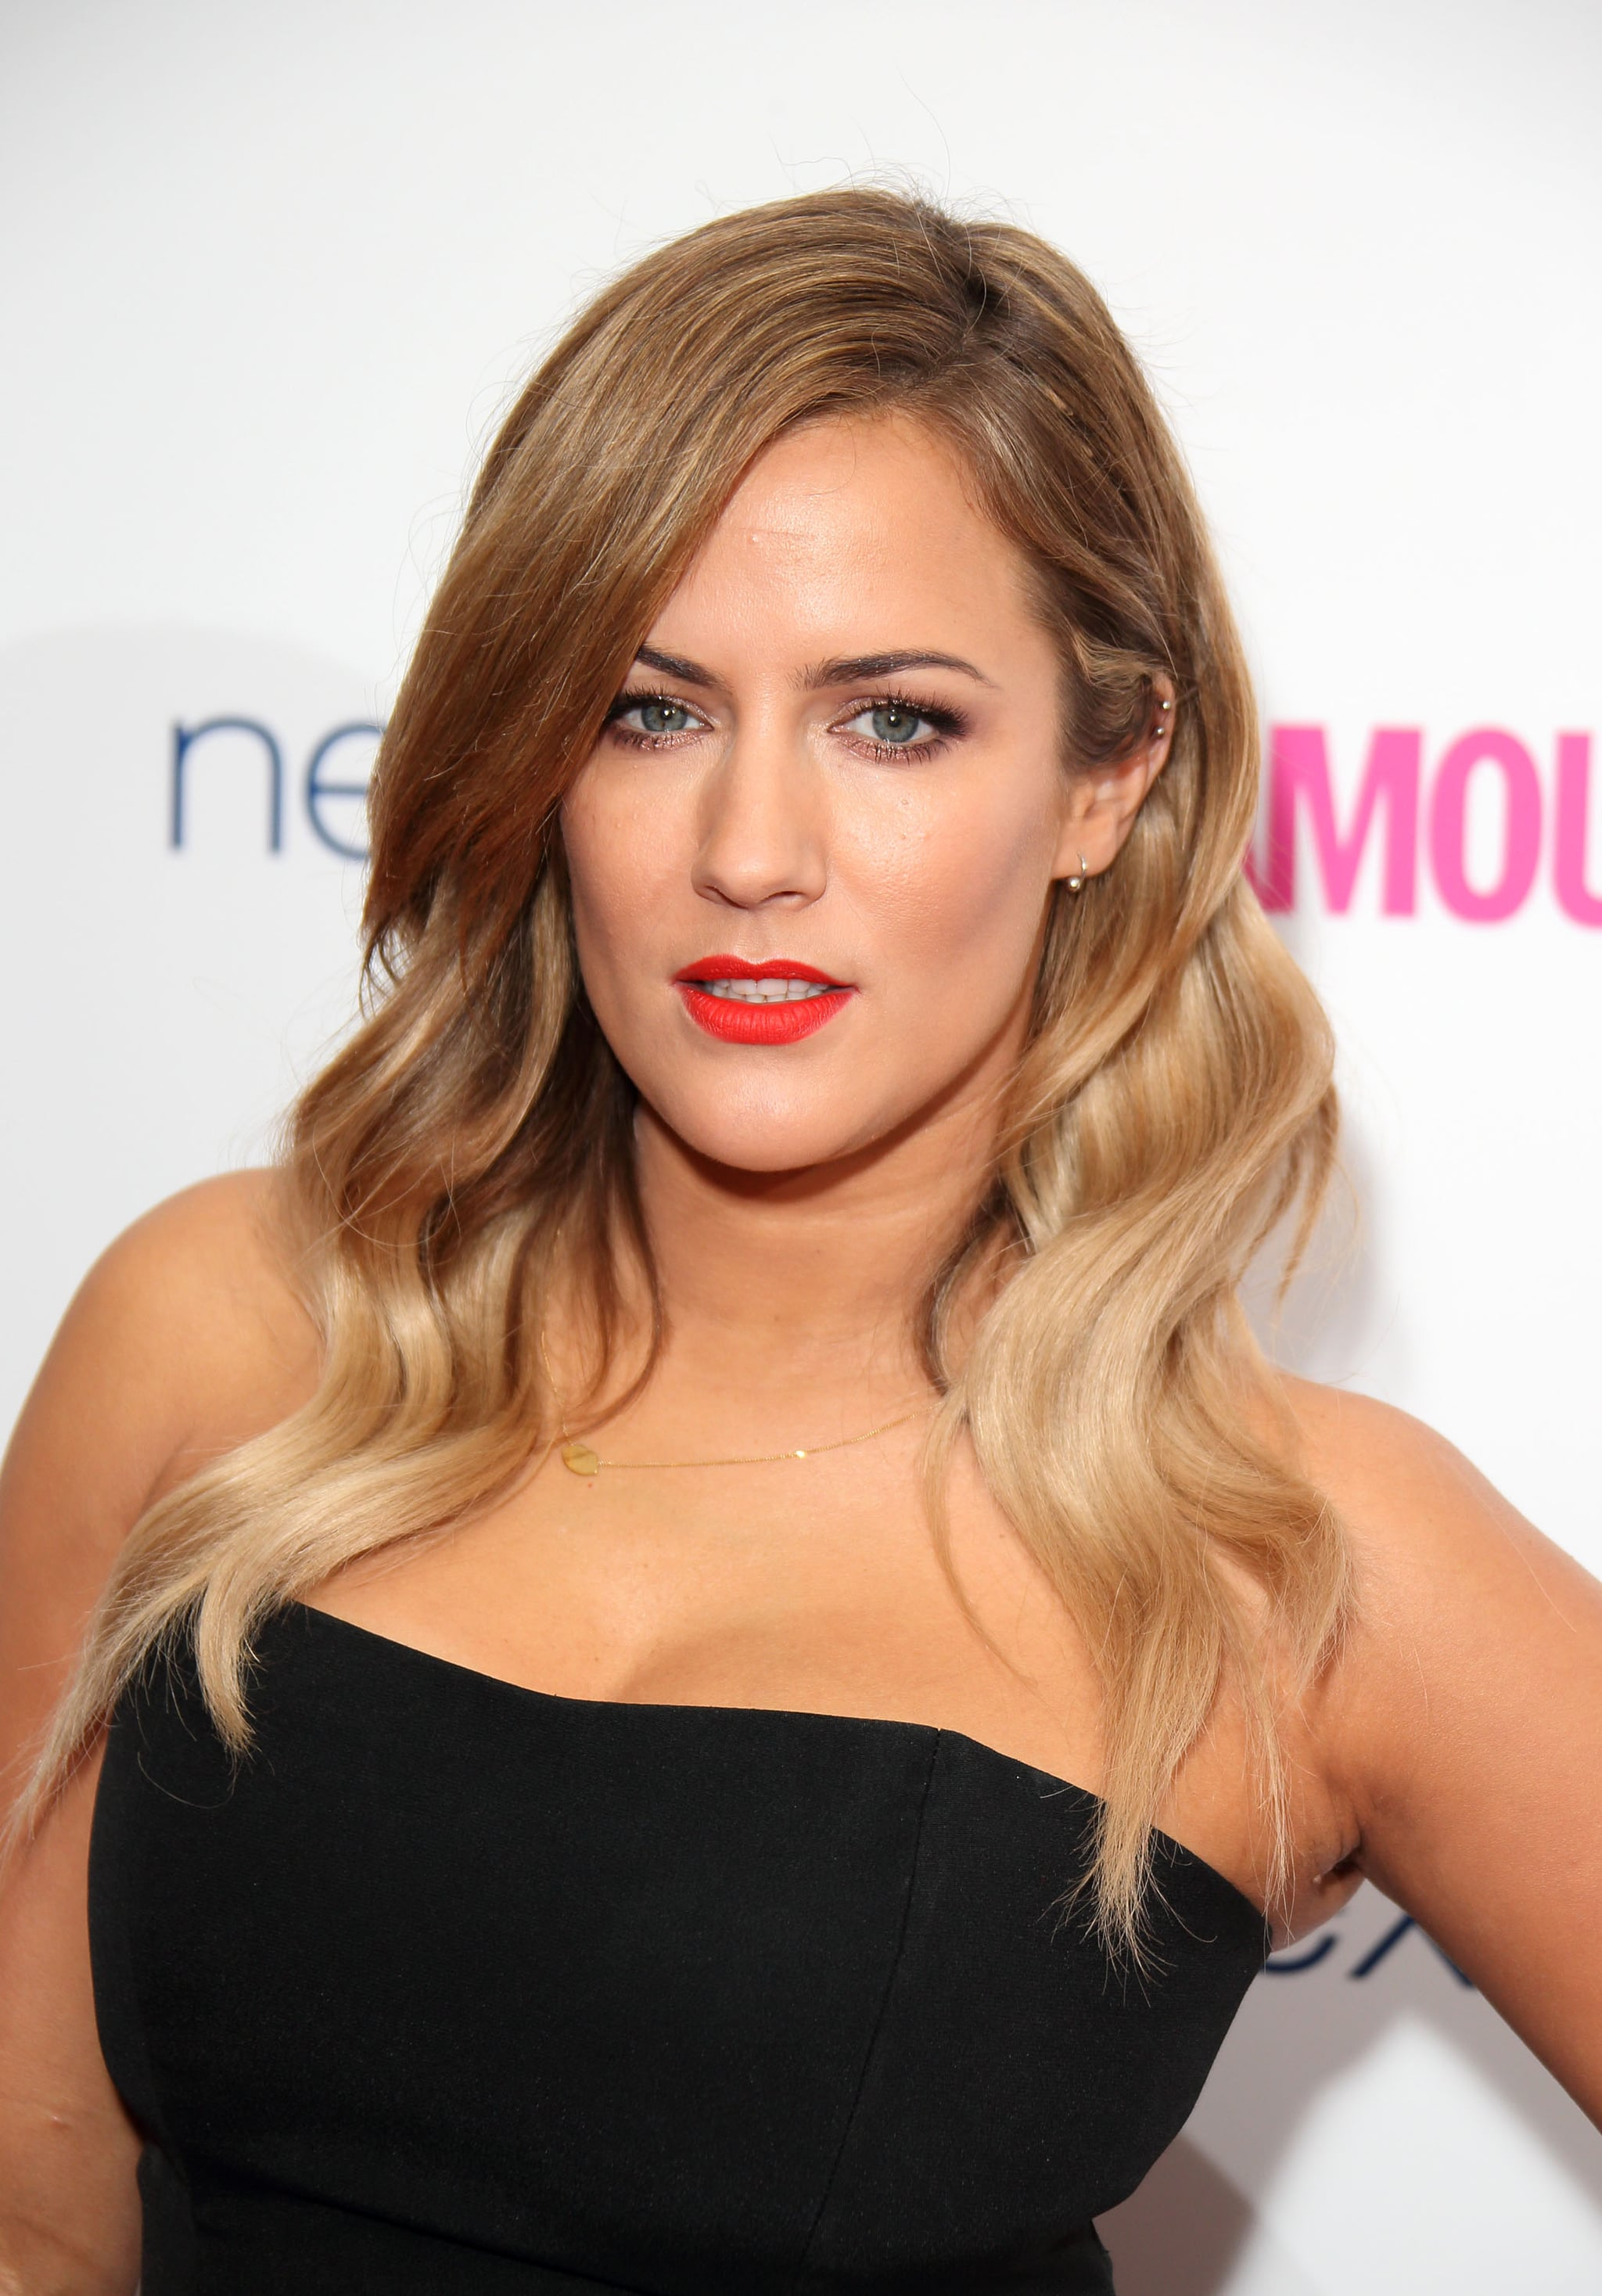 Caroline Flack nudes (78 photos), hacked Boobs, Twitter, butt 2020